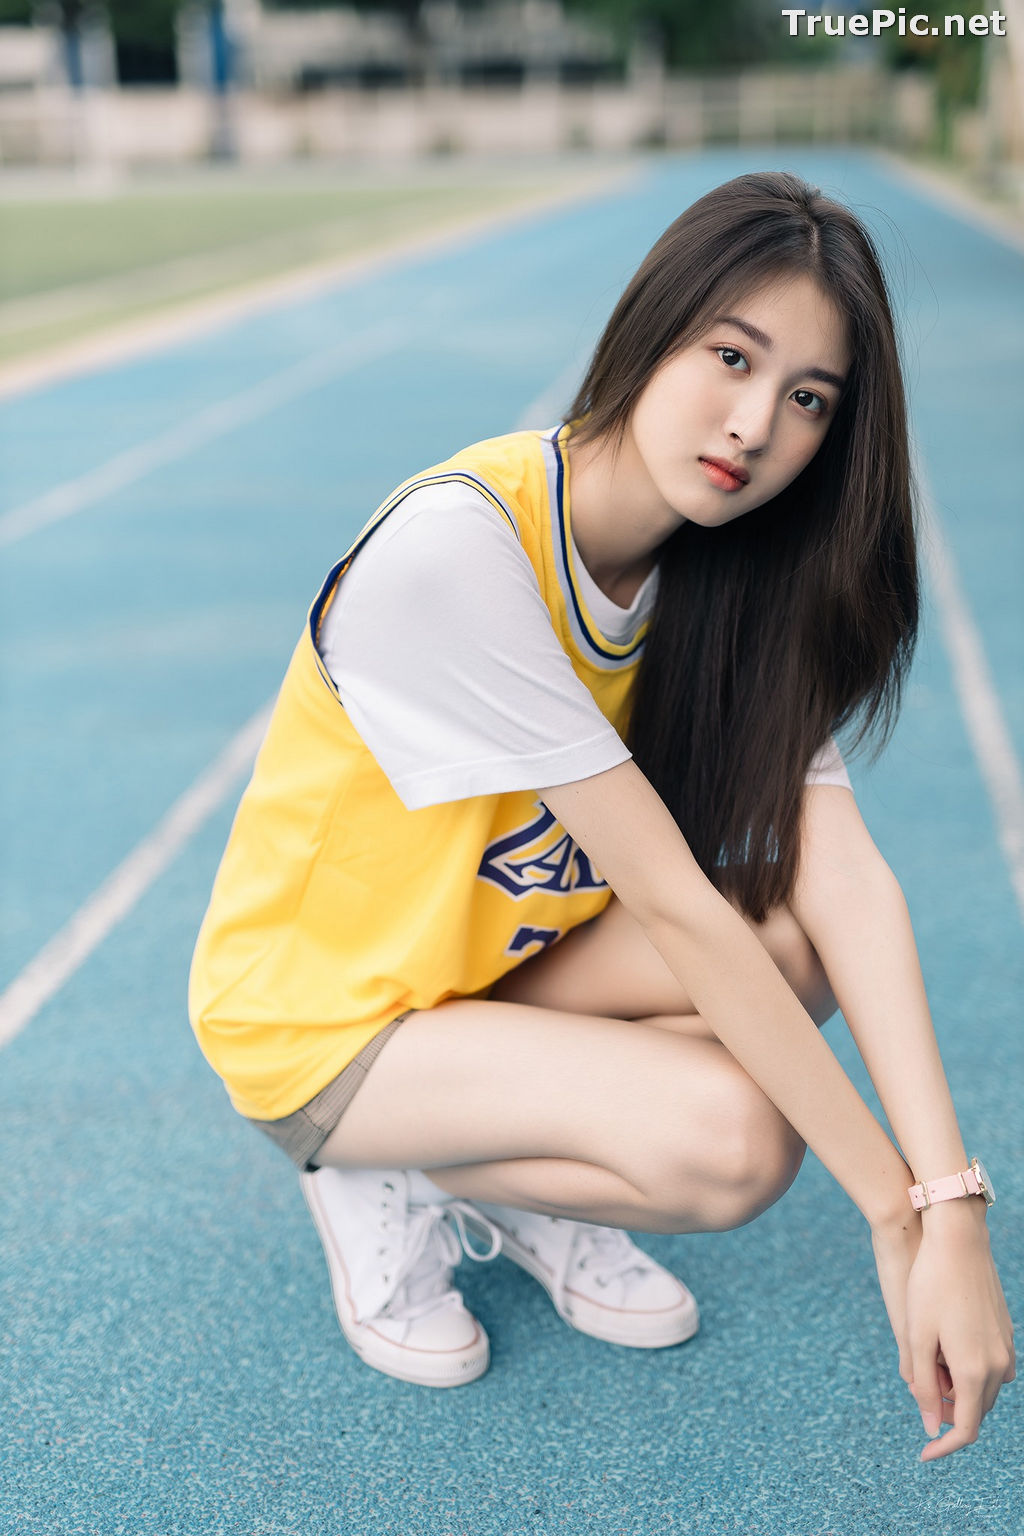 Image Thailand Beautiful Girl - View Benyapa - Long Hair Sport Girl - TruePic.net - Picture-4